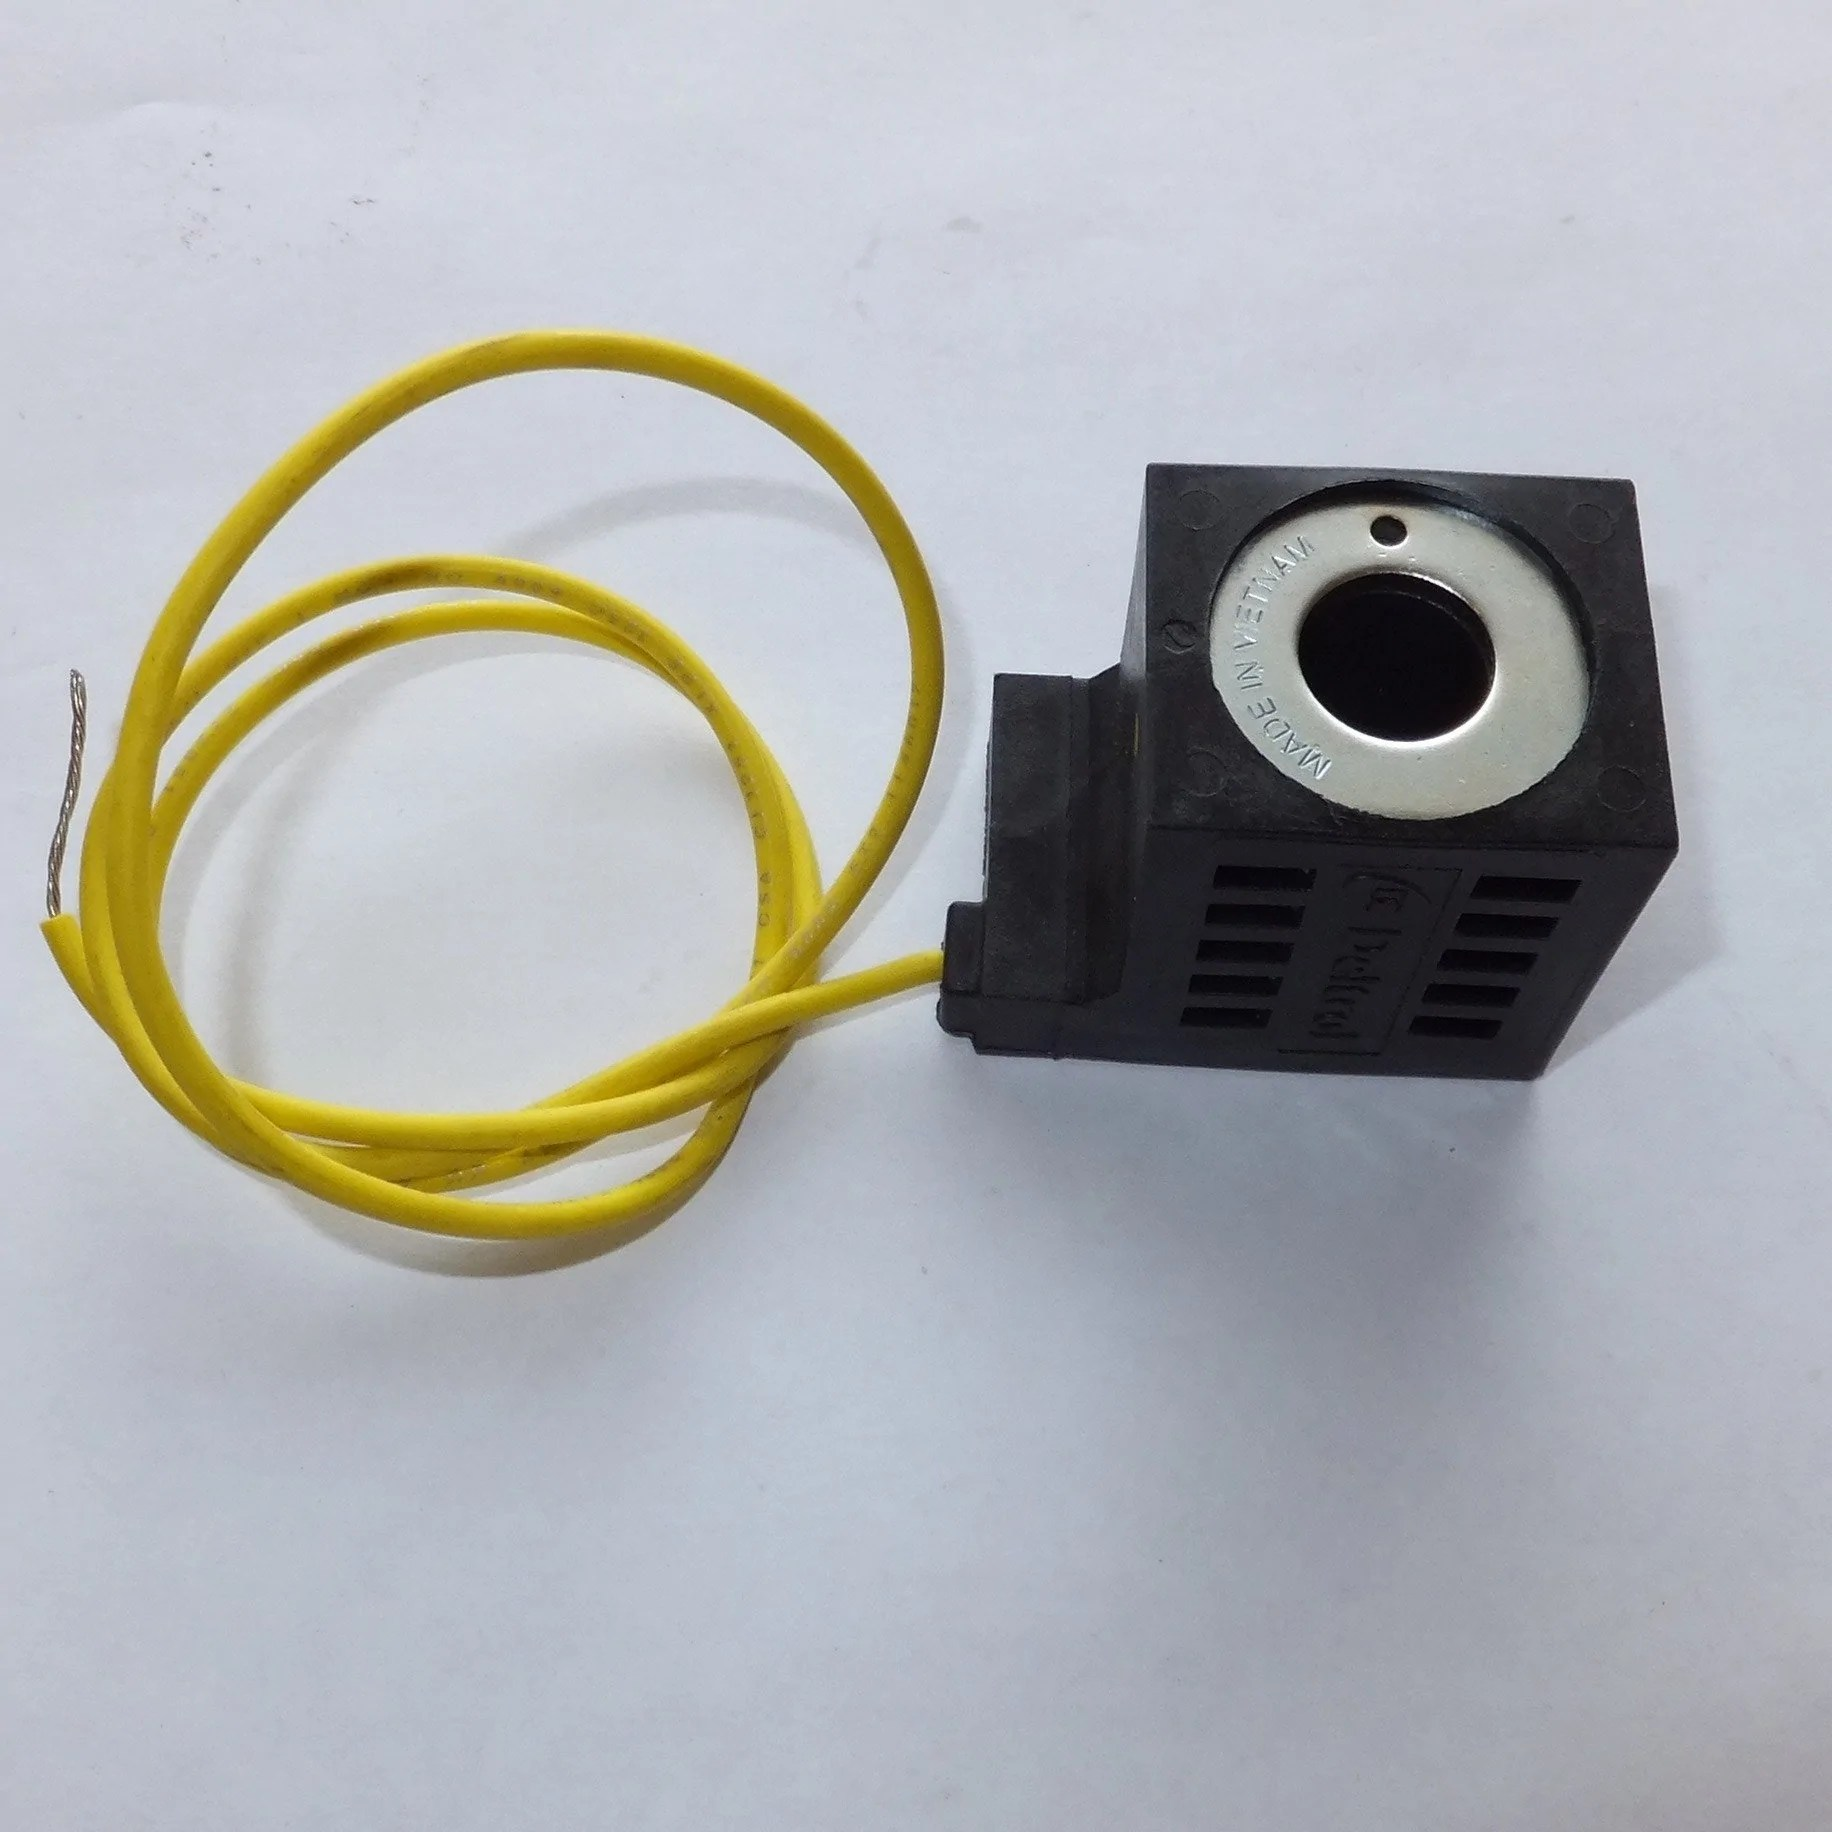 small resolution of  valve coil 12v 1 wire for bucher pump m 3319 old style